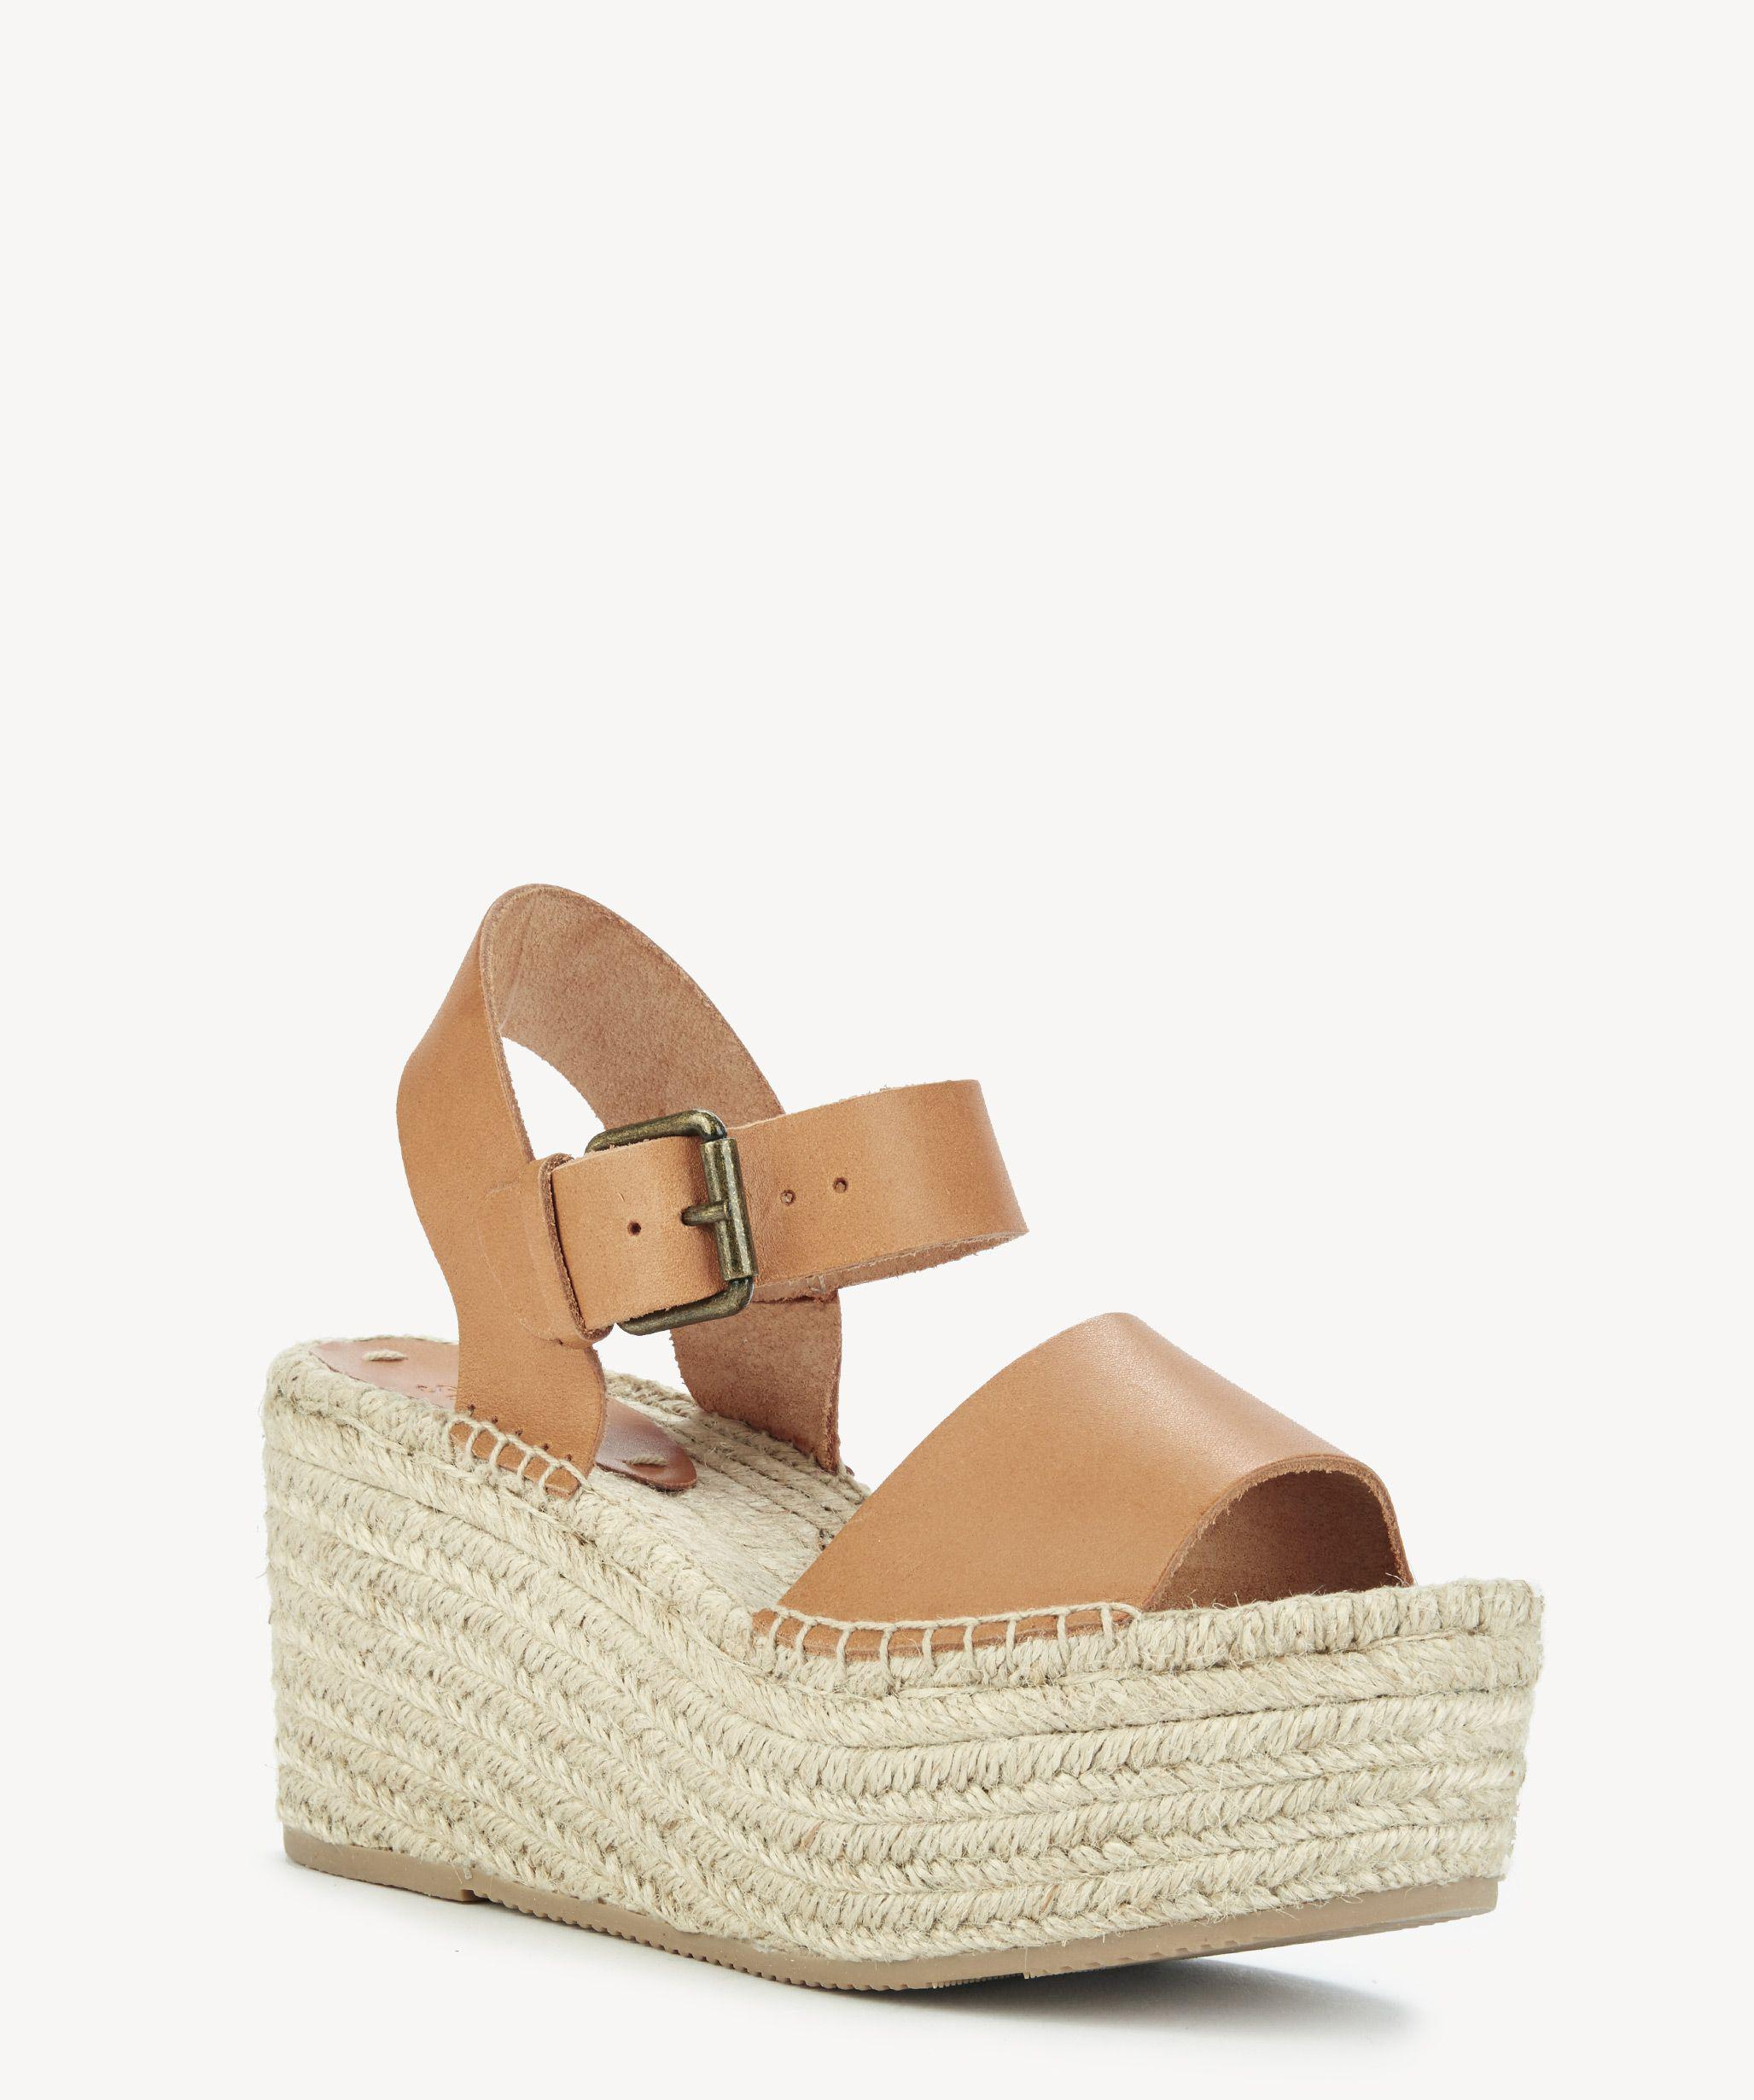 652f3700f64 Soludos - Natural Minorca High Platform Platform Wedge - Lyst. View  fullscreen